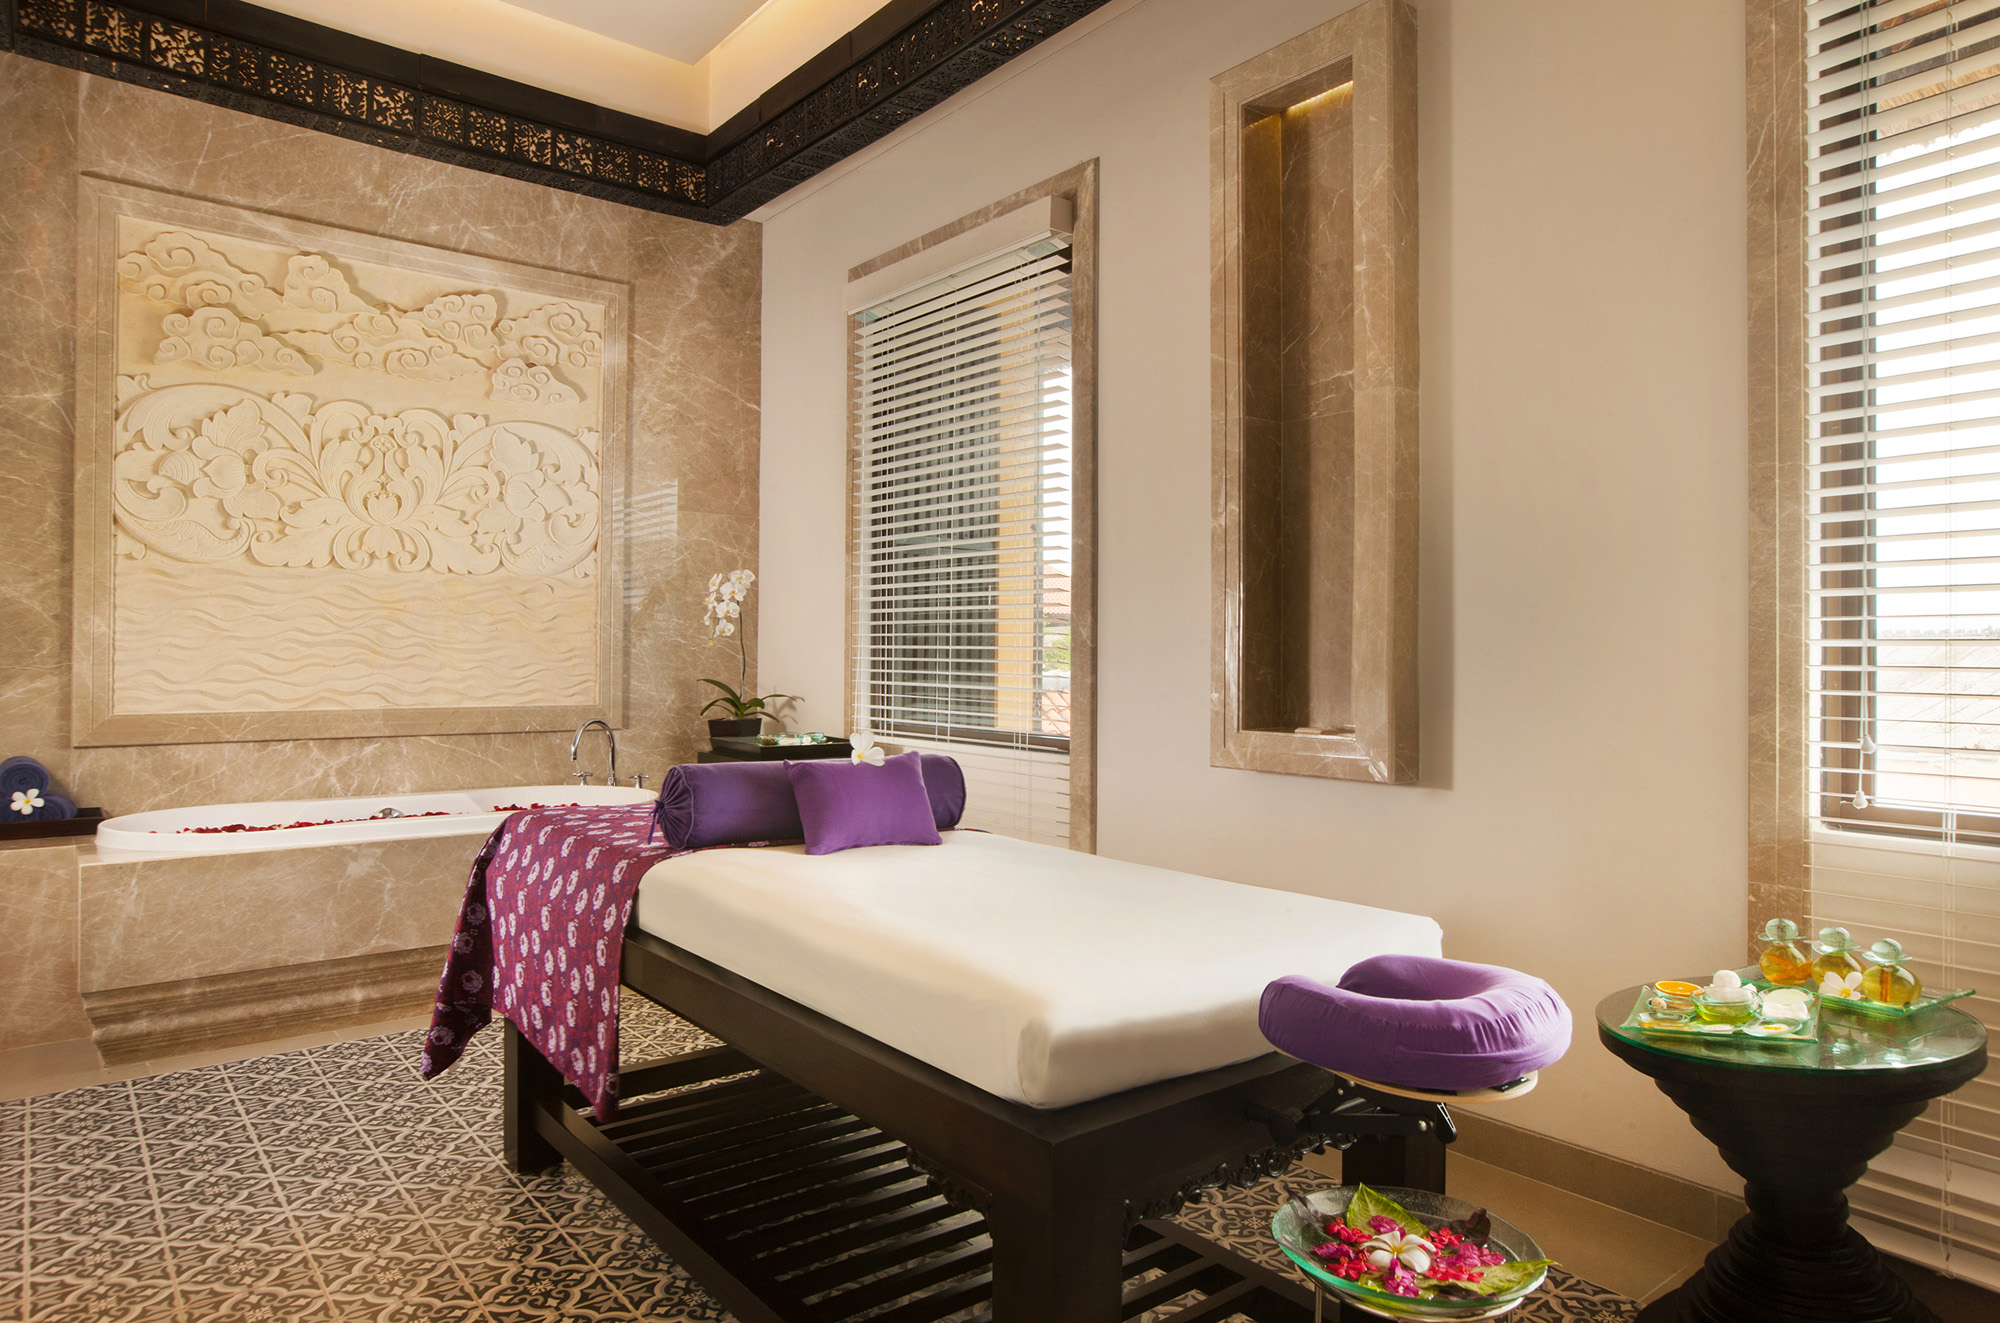 24 NEW SPA SUITES READY FOR PAMPERING SESSIONS AT AYANA